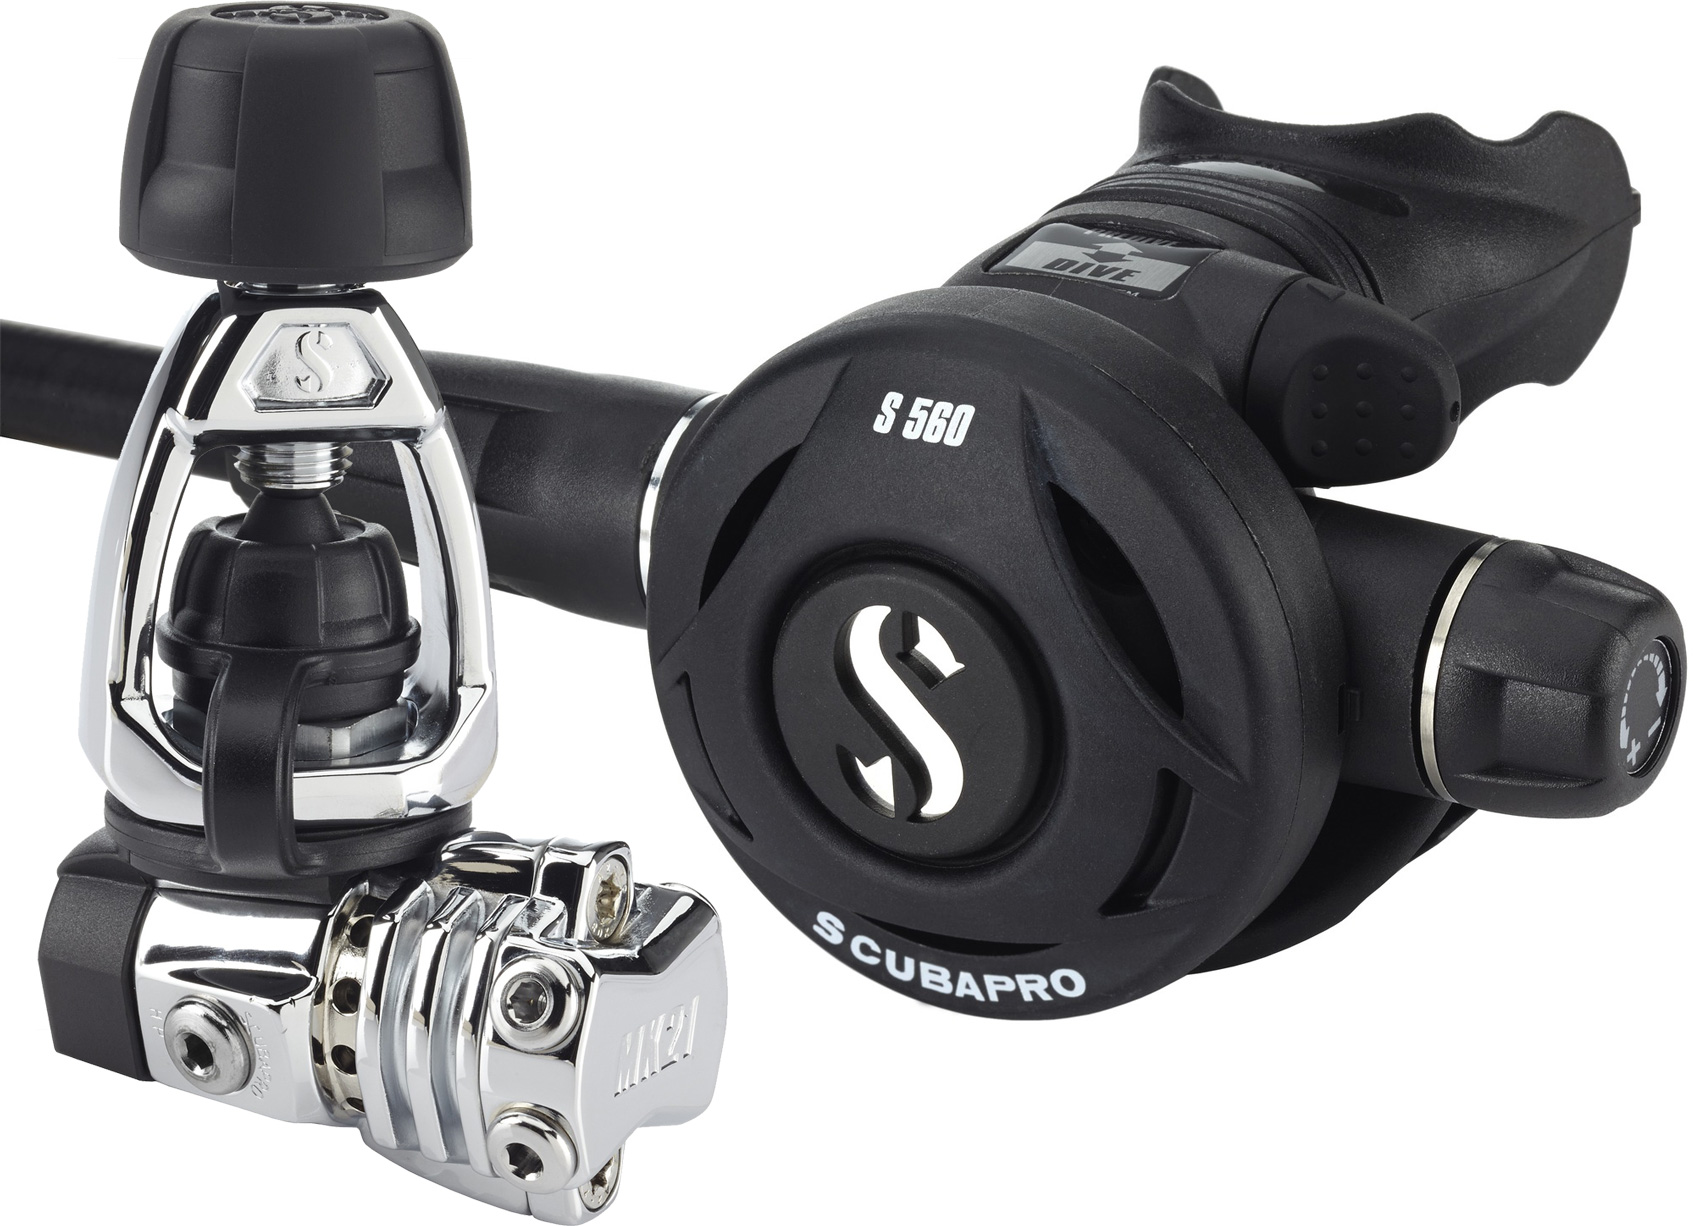 ScubaPro MK21/S560 Regulator